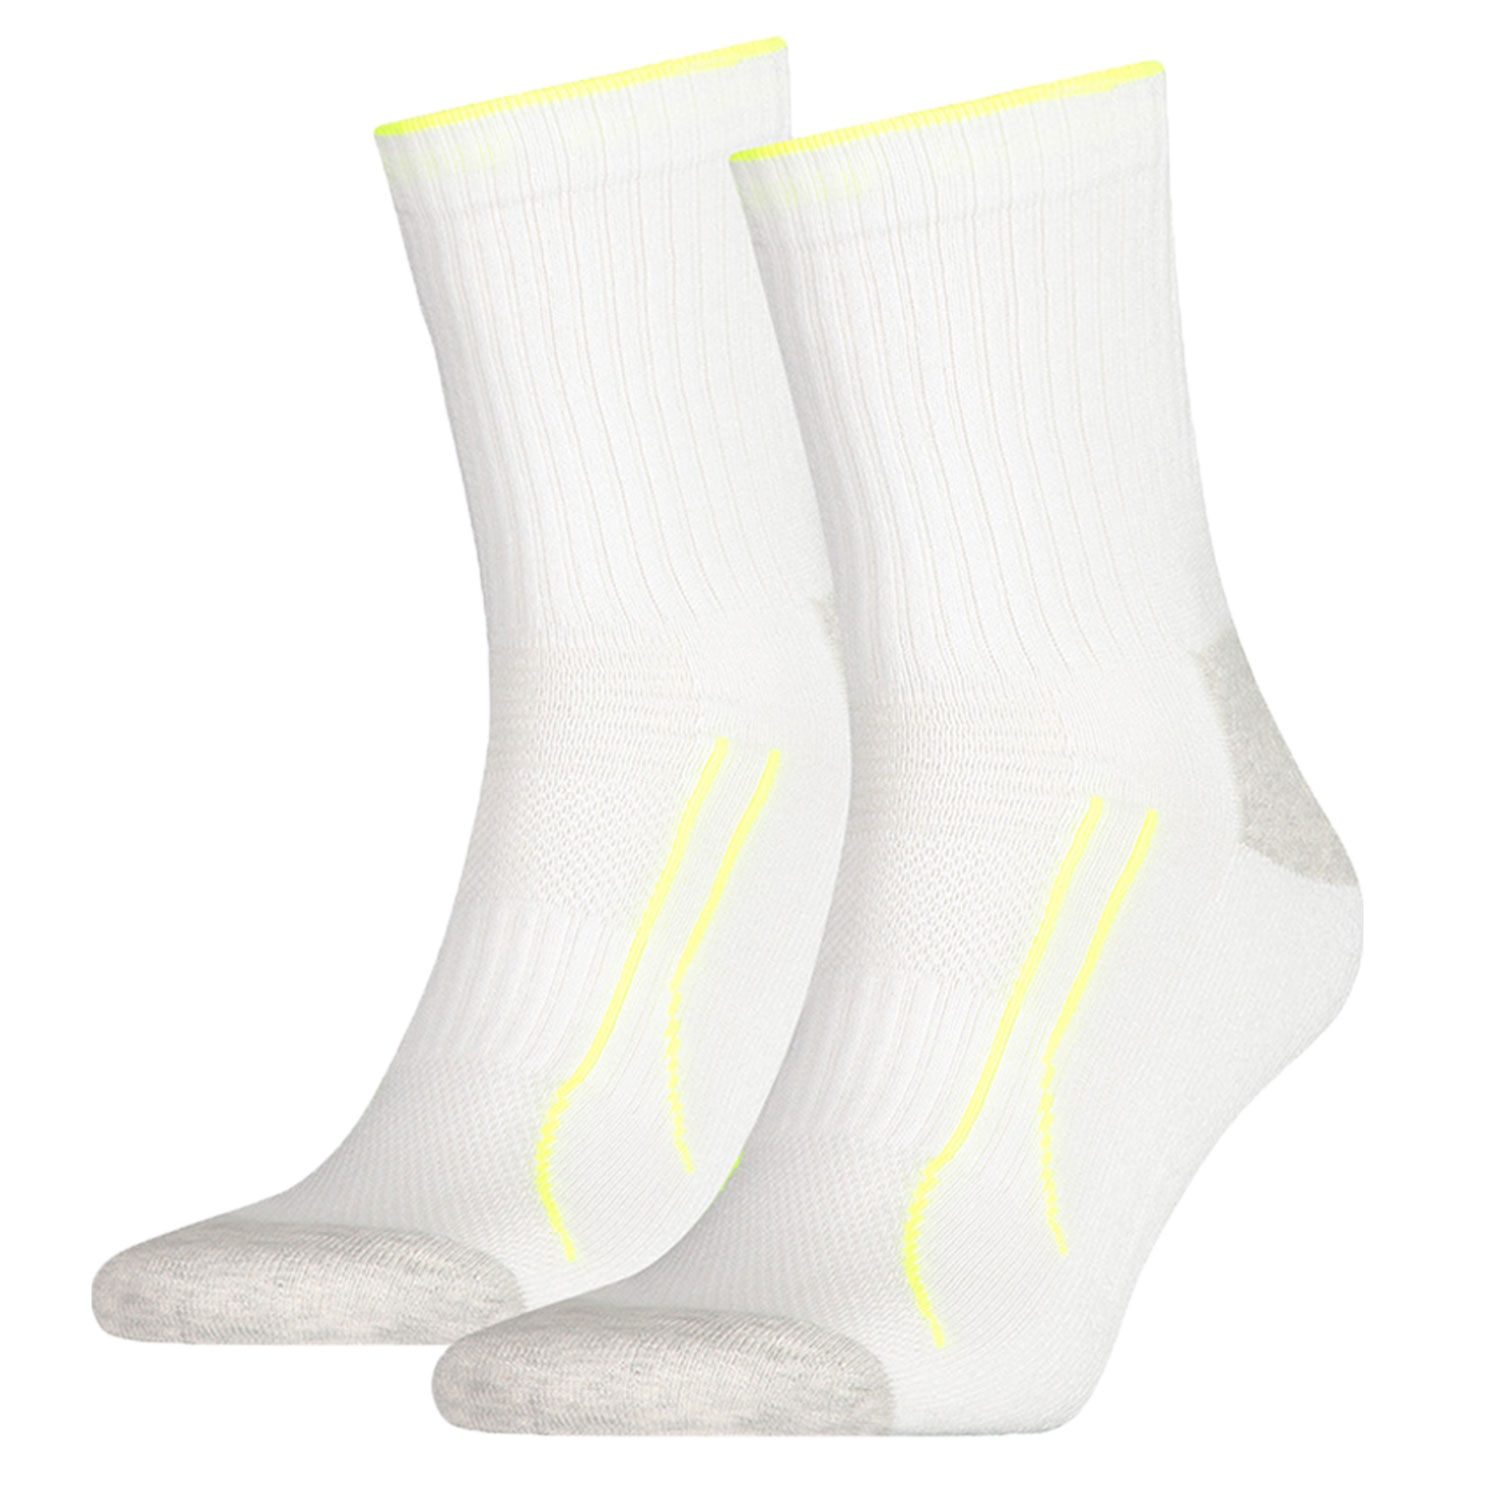 Puma Performance Train Short Socks 6 Paar , 261010001 – Bild 5